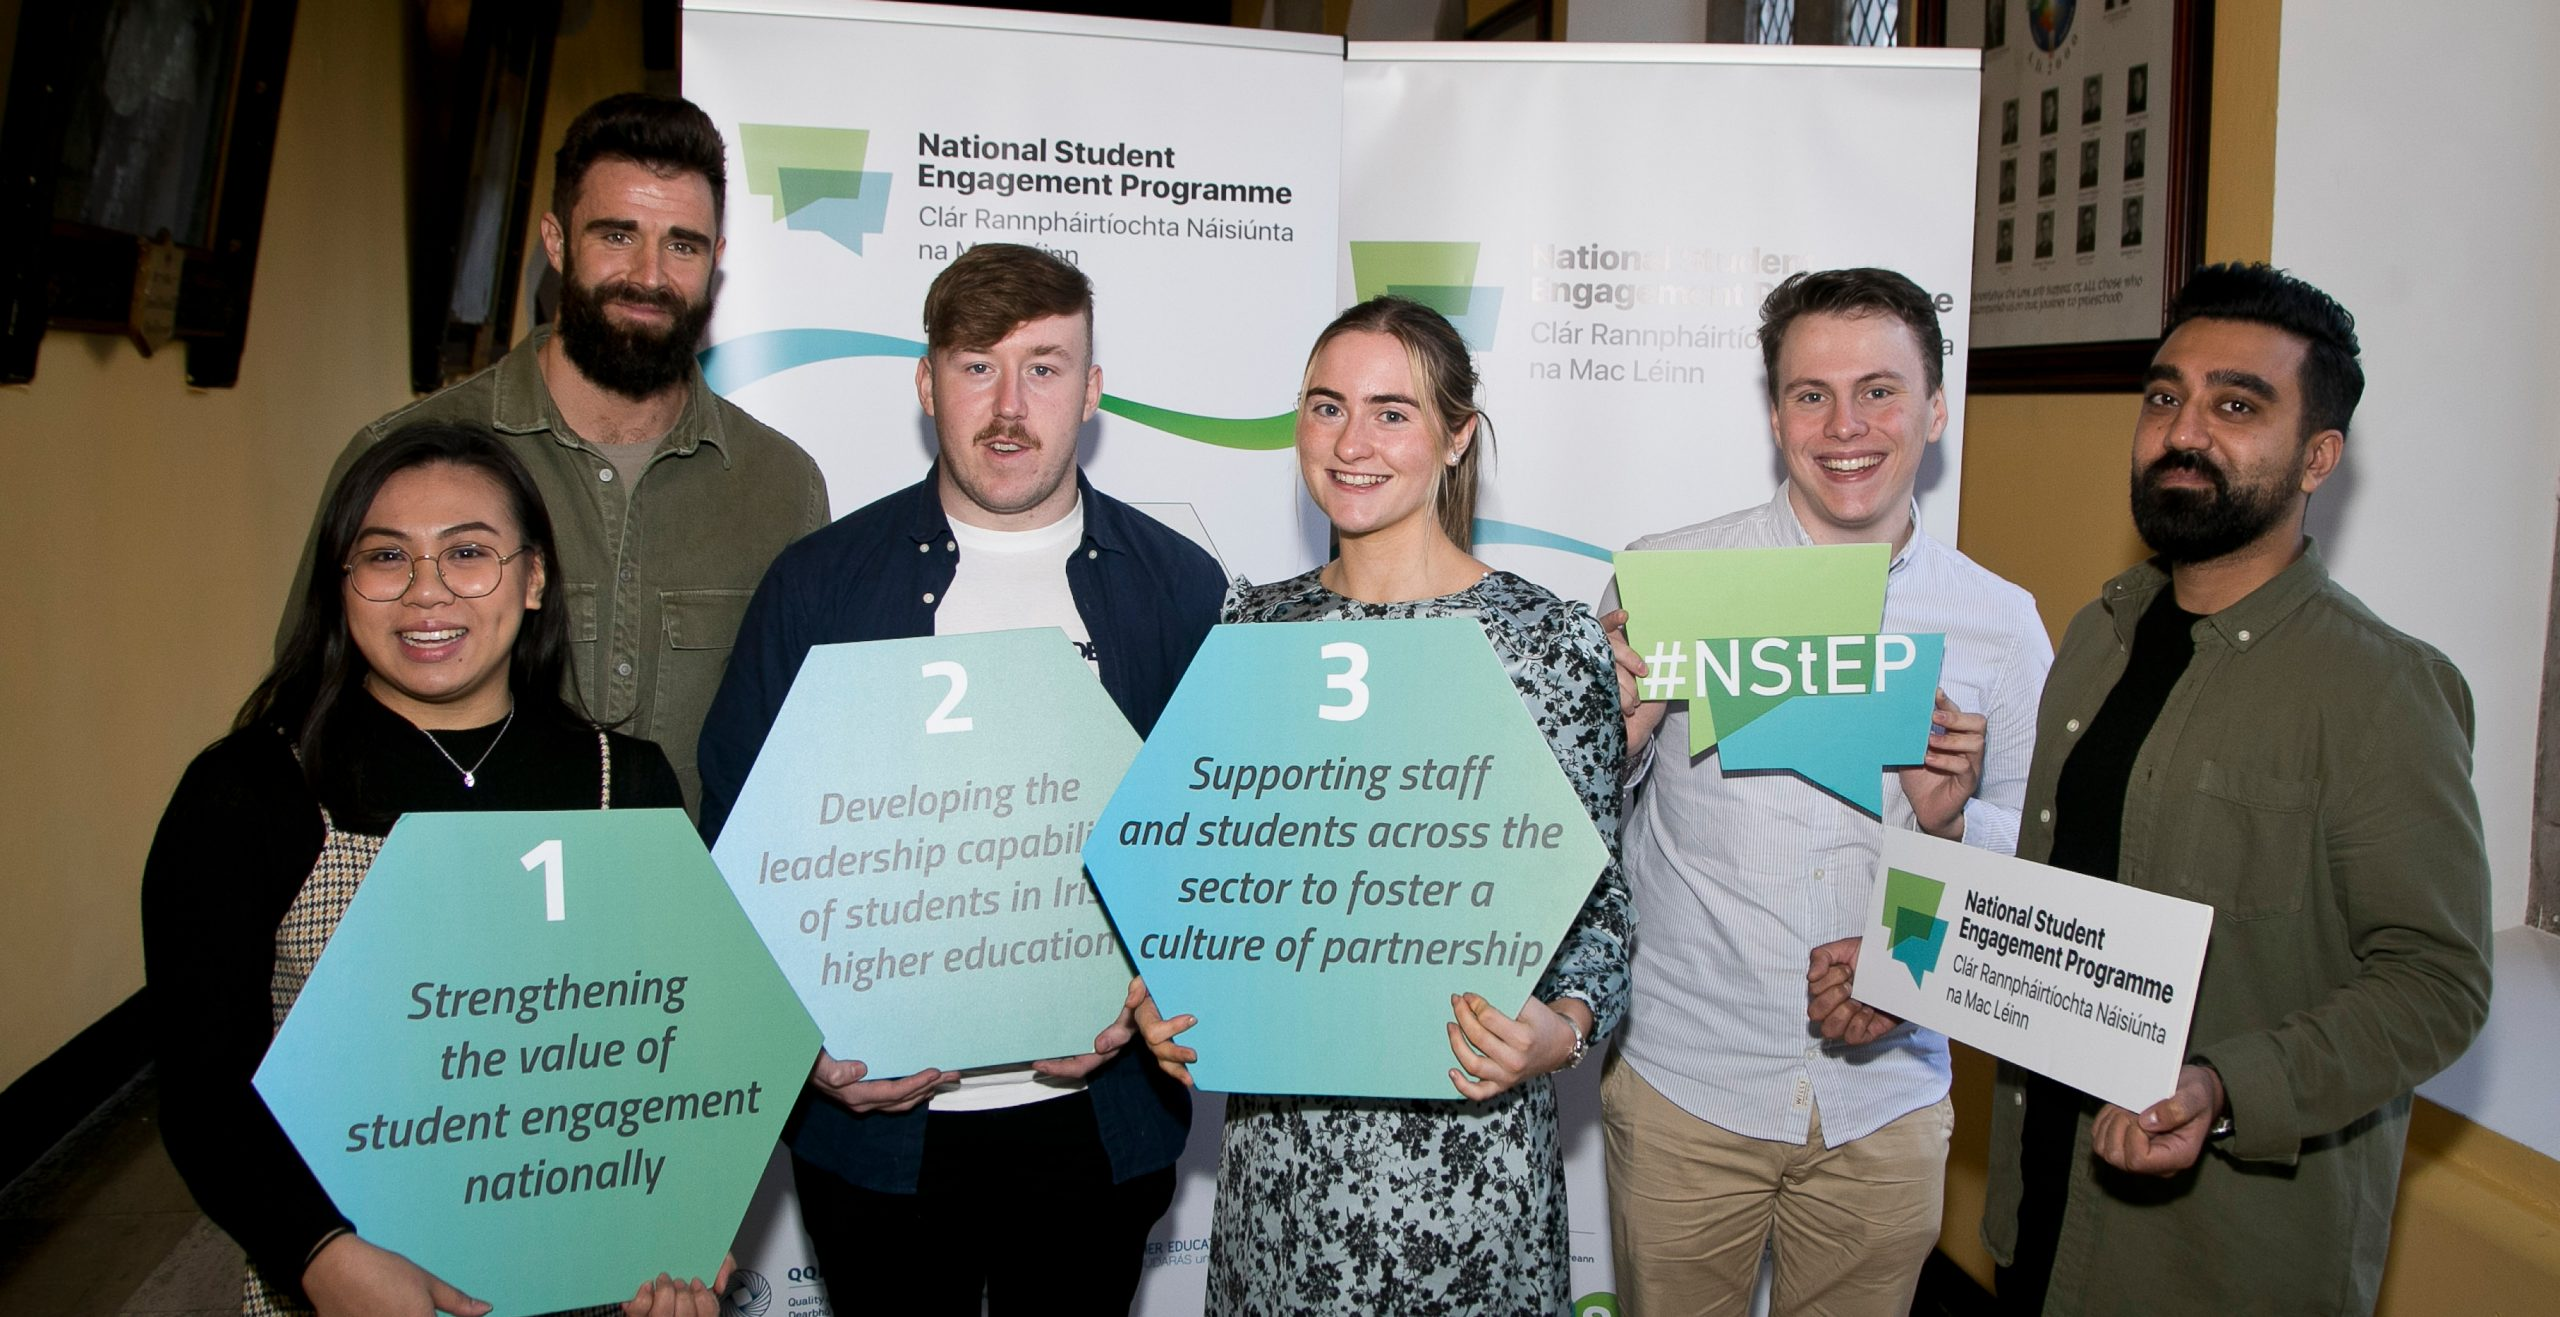 NStEP Launches call for applications to the National Advisory Group for Student Engagement